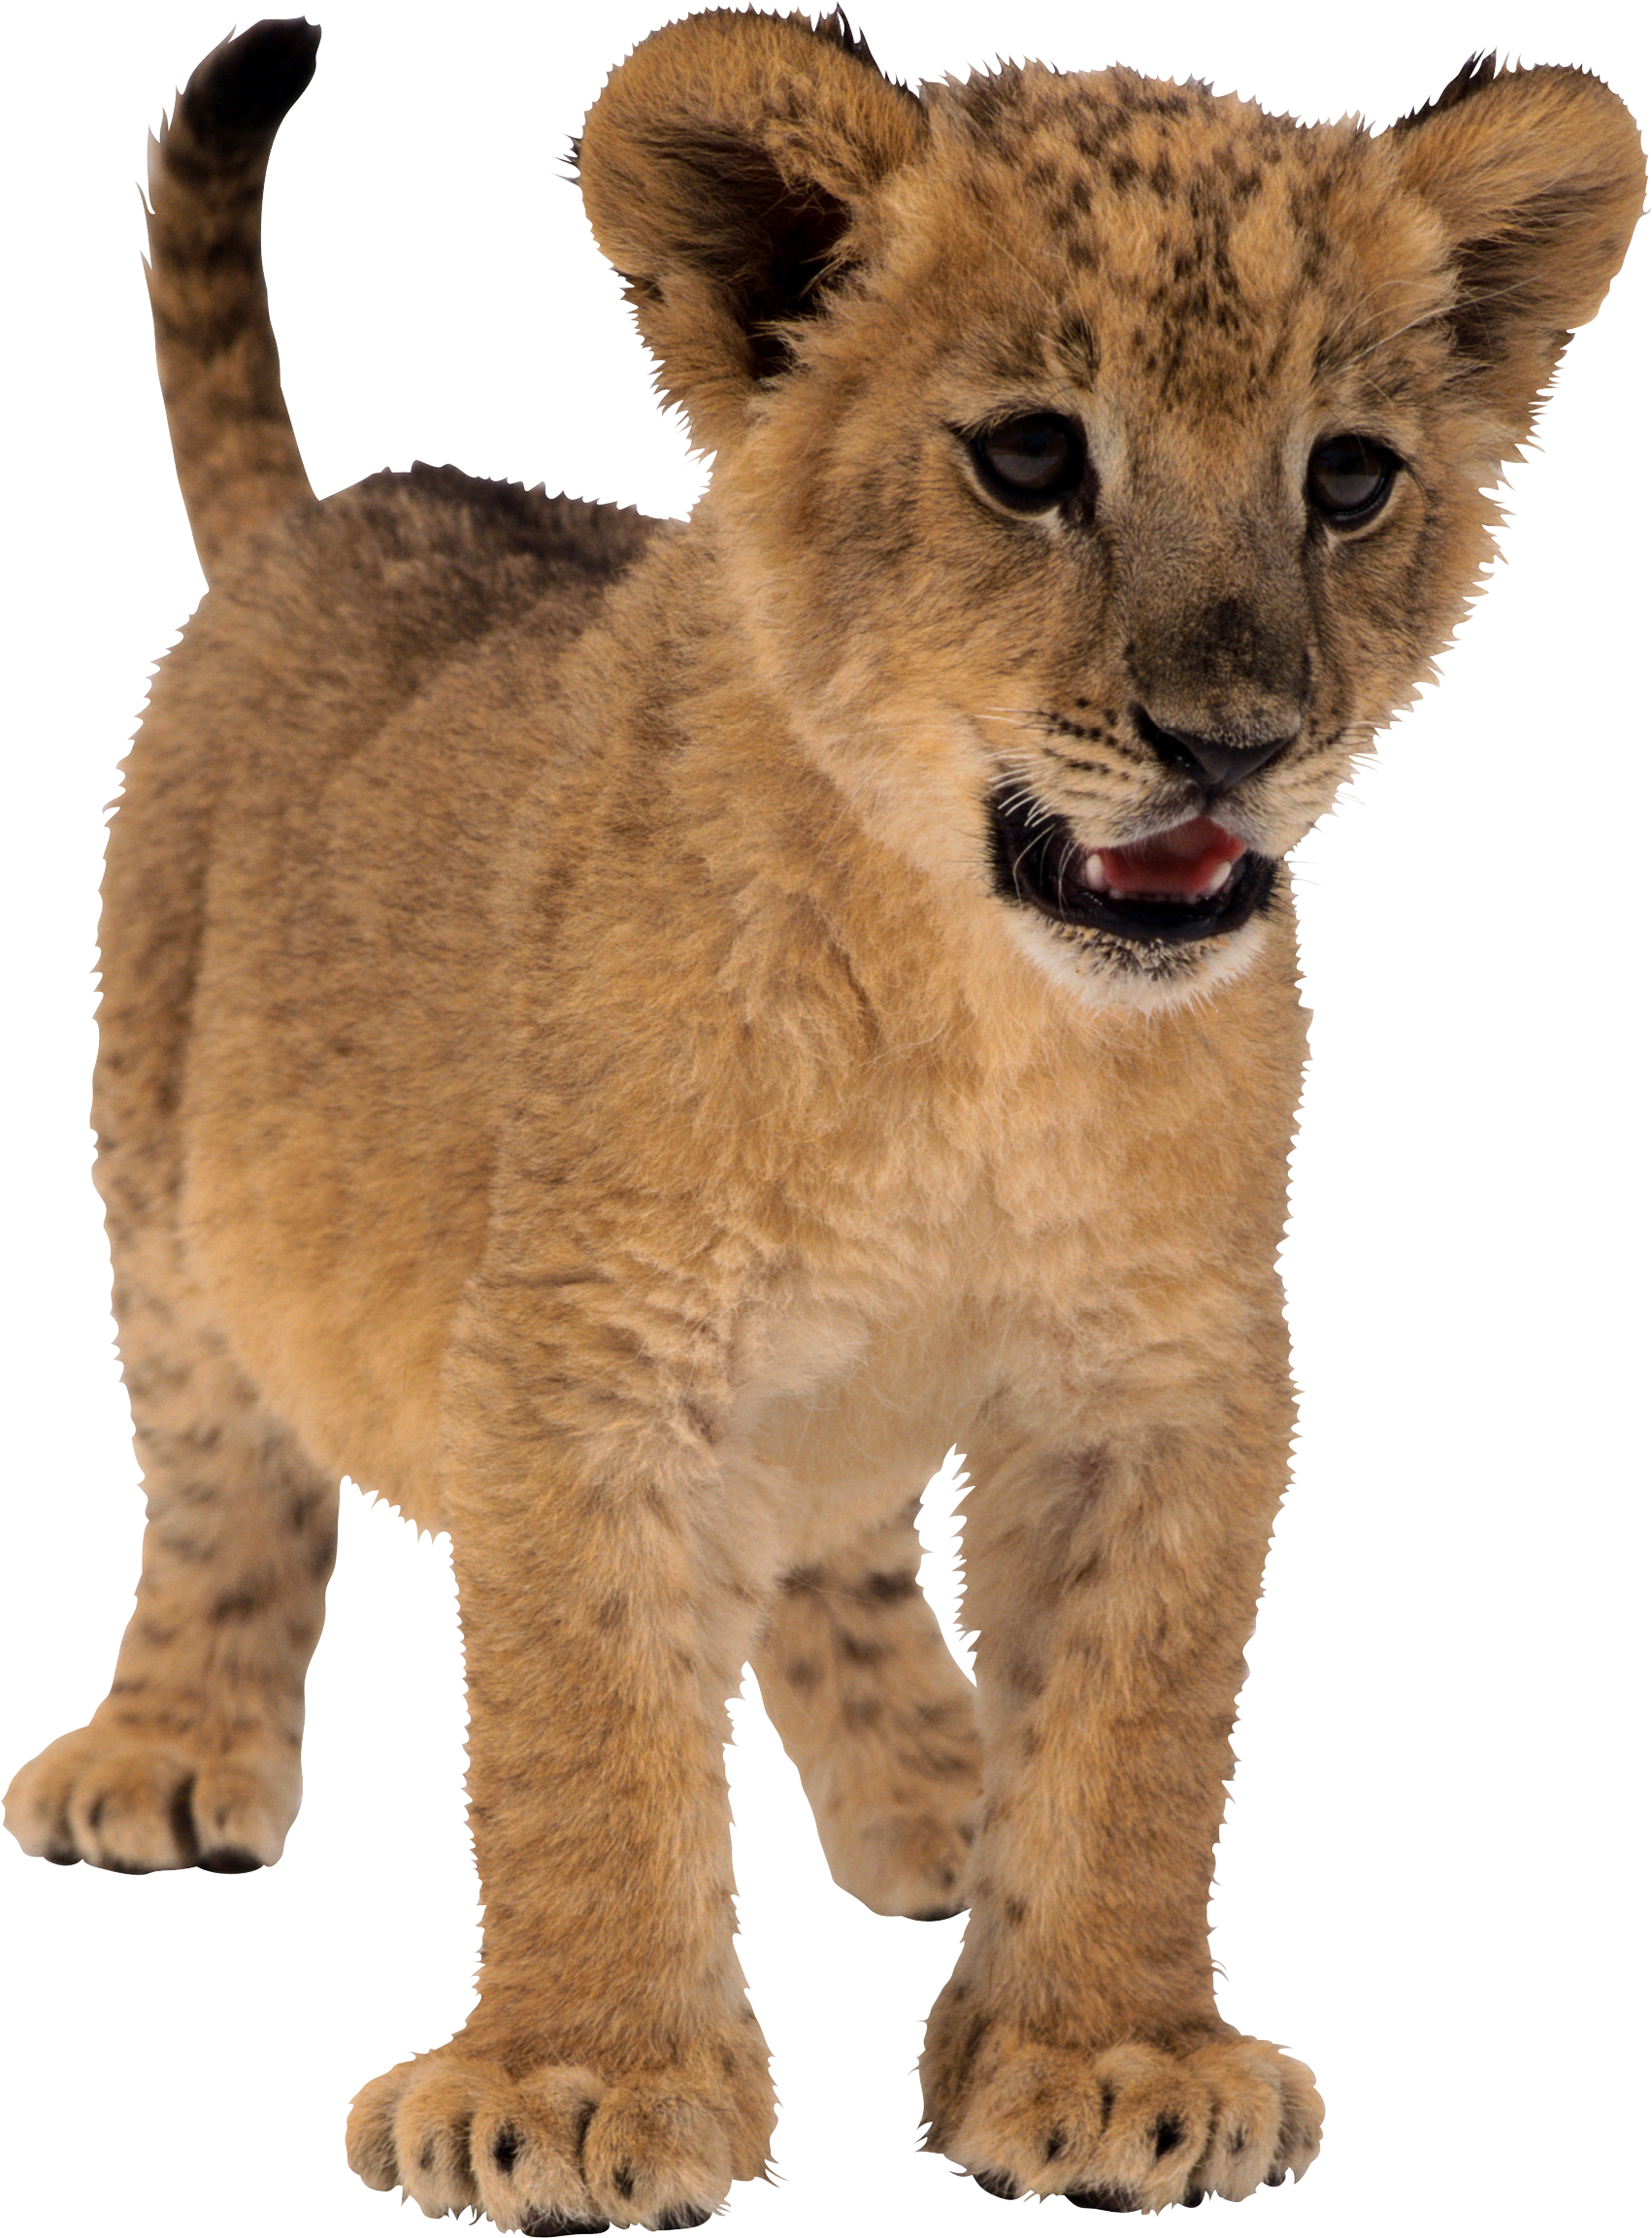 small lion PNG image